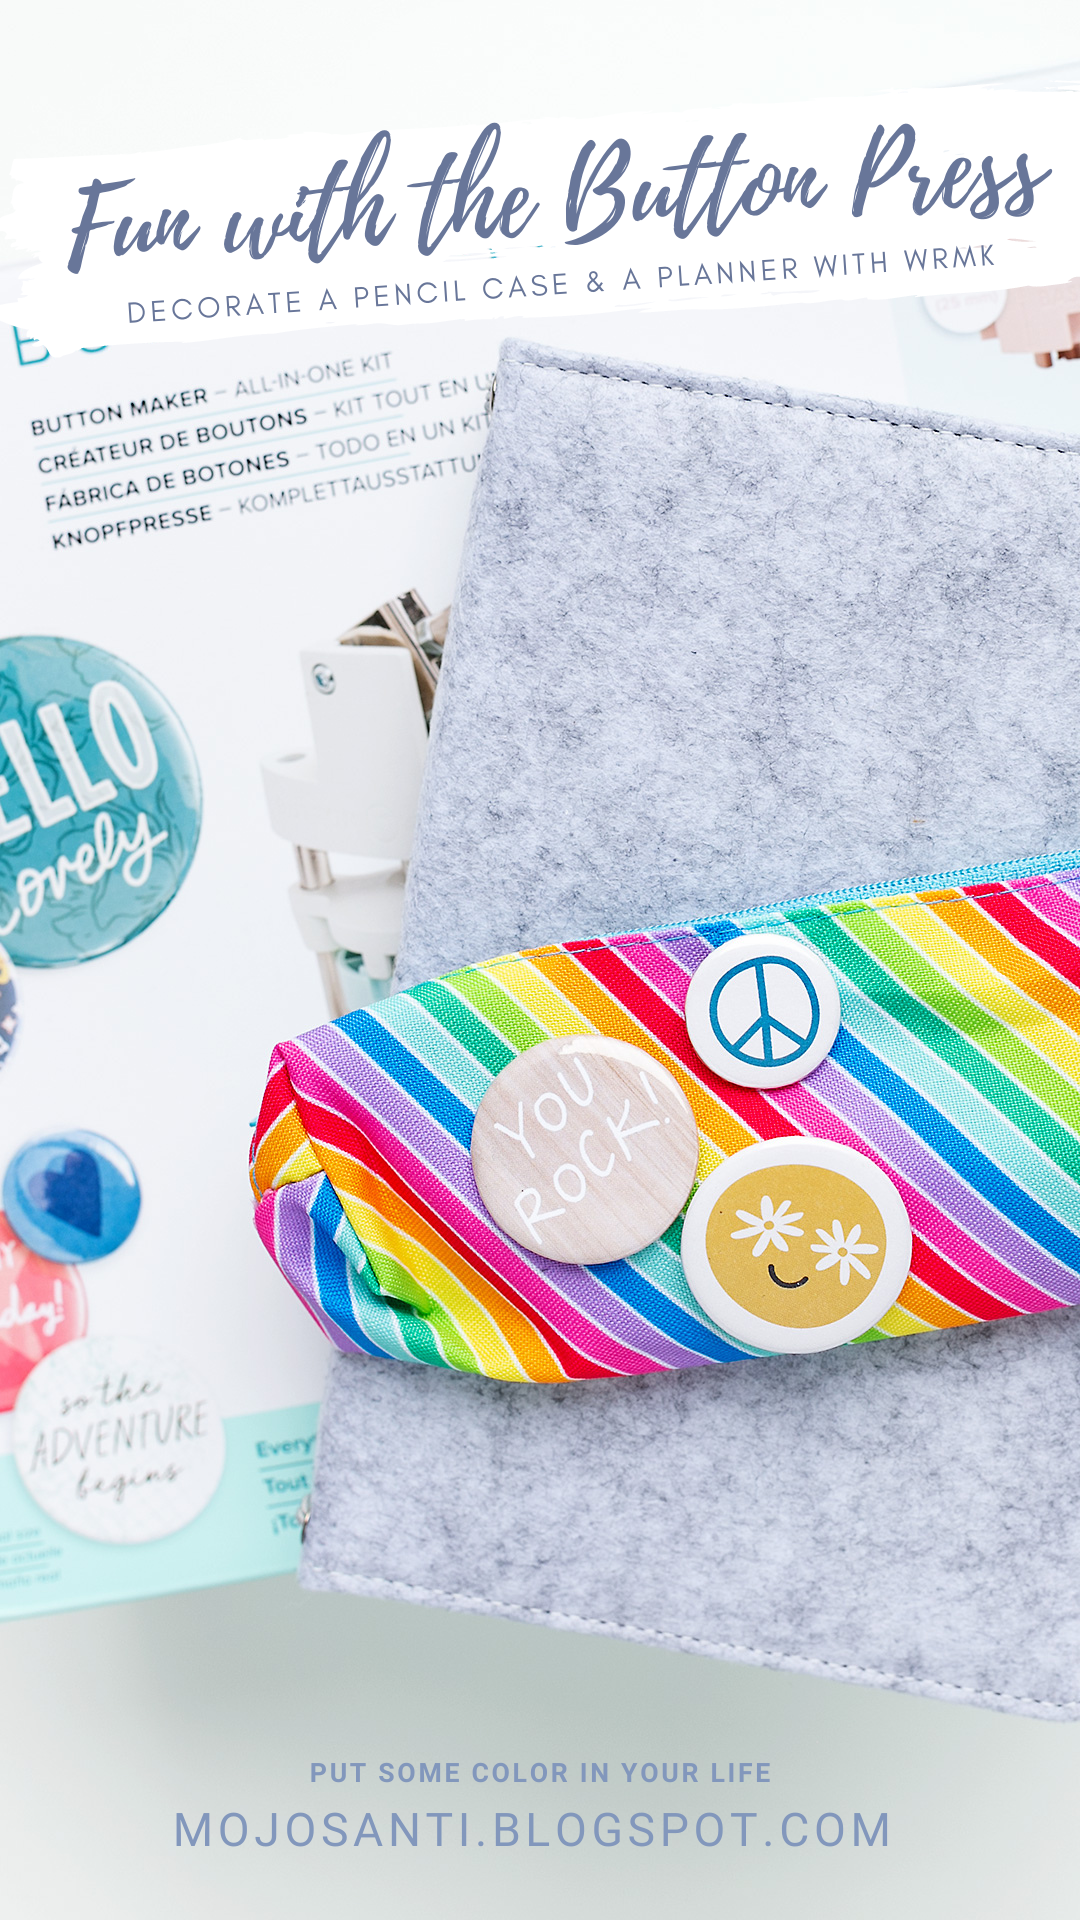 Pinterest Pin for projects with the Button Press by We R Memory Keepers colorful pencil case with flair buttons